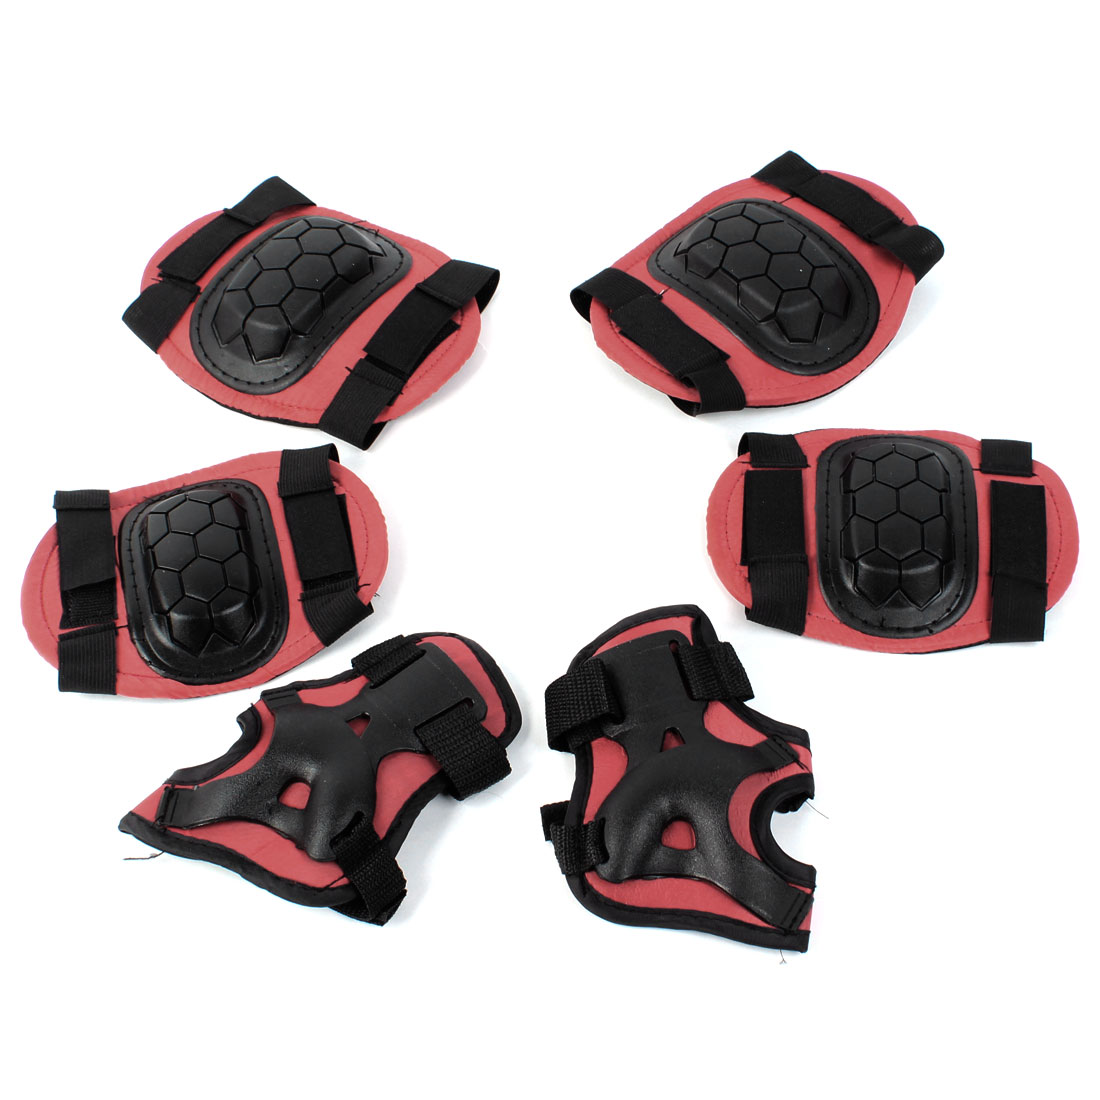 Red Skating Elbow Knee Palm Support Pad Protector 6 in 1 Set for Children